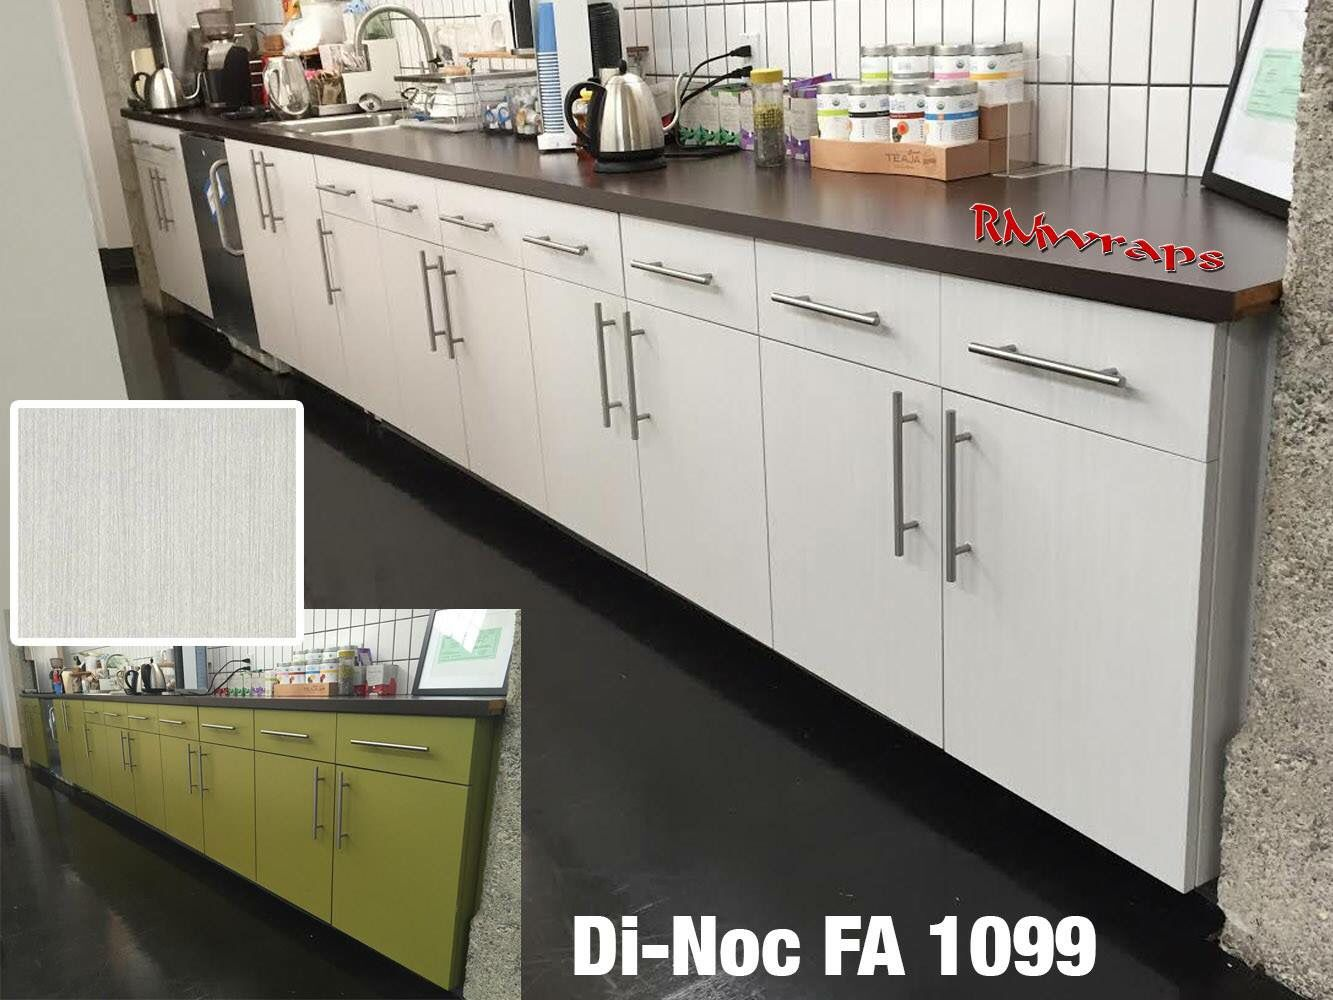 di noc vinyl cabinetry wrap before and after www. Black Bedroom Furniture Sets. Home Design Ideas